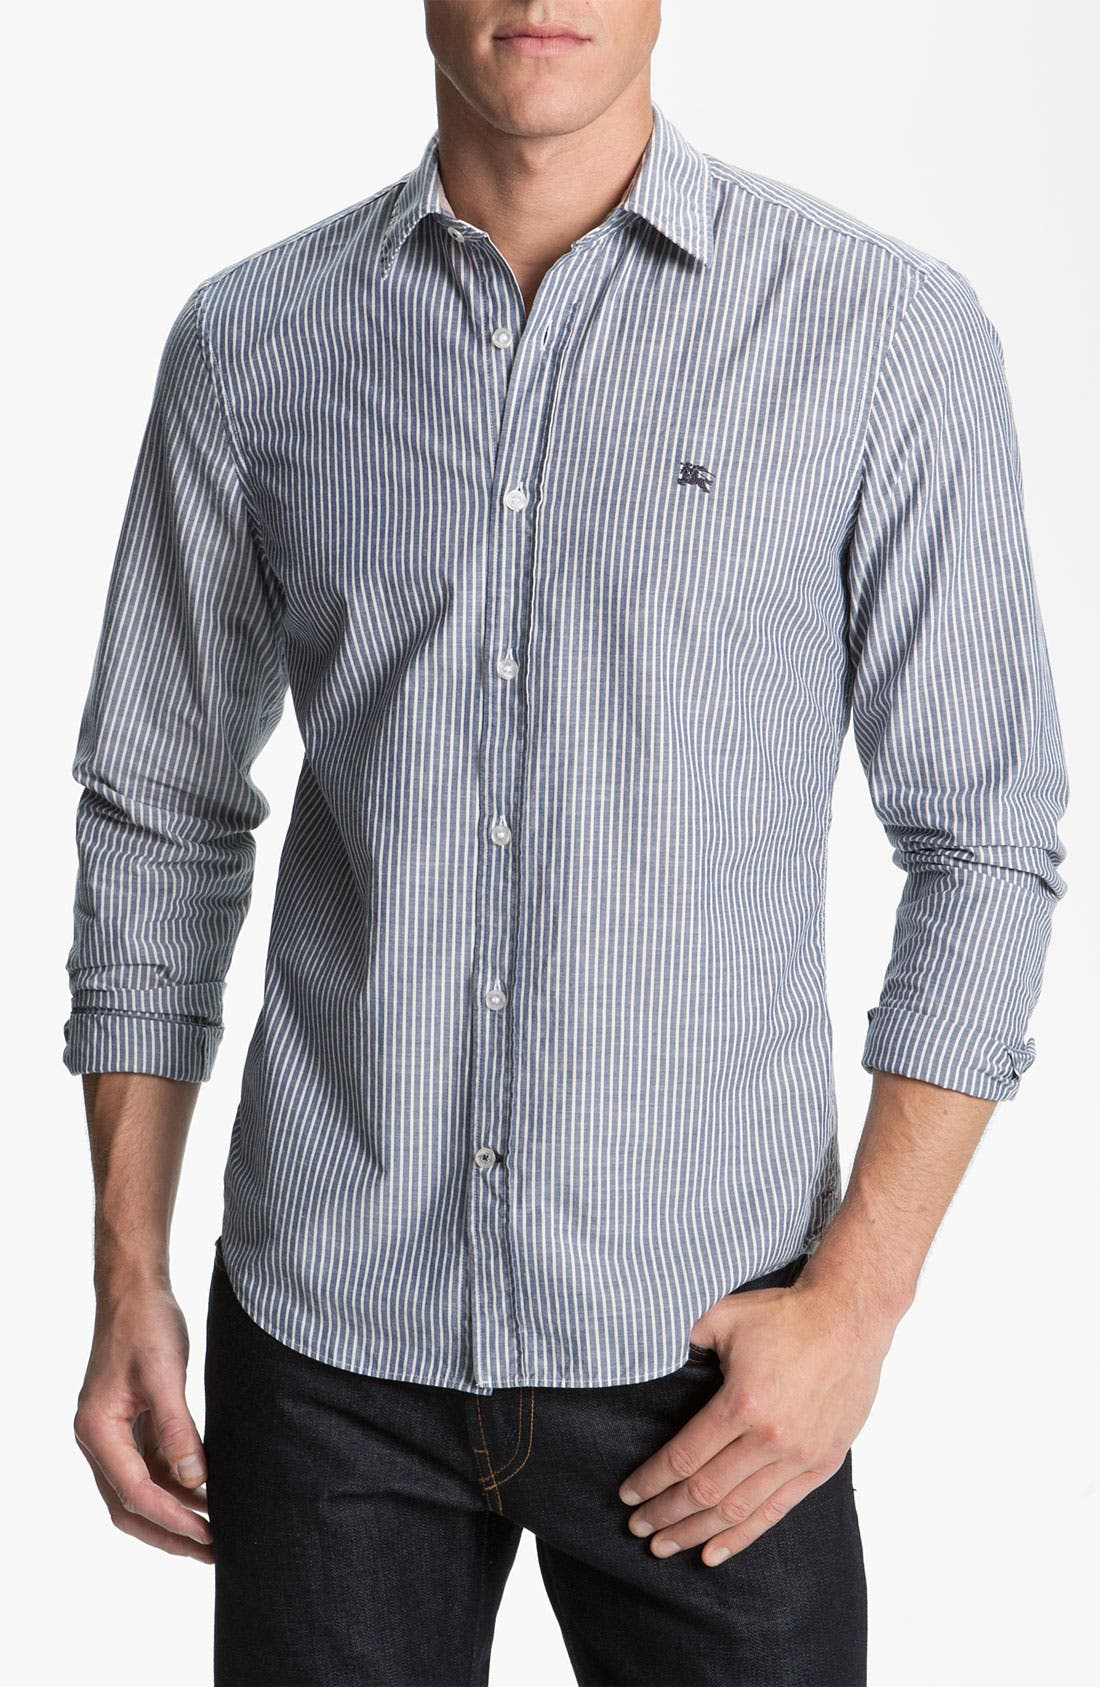 Main Image - Burberry Brit Stripe Trim Fit Sport Shirt